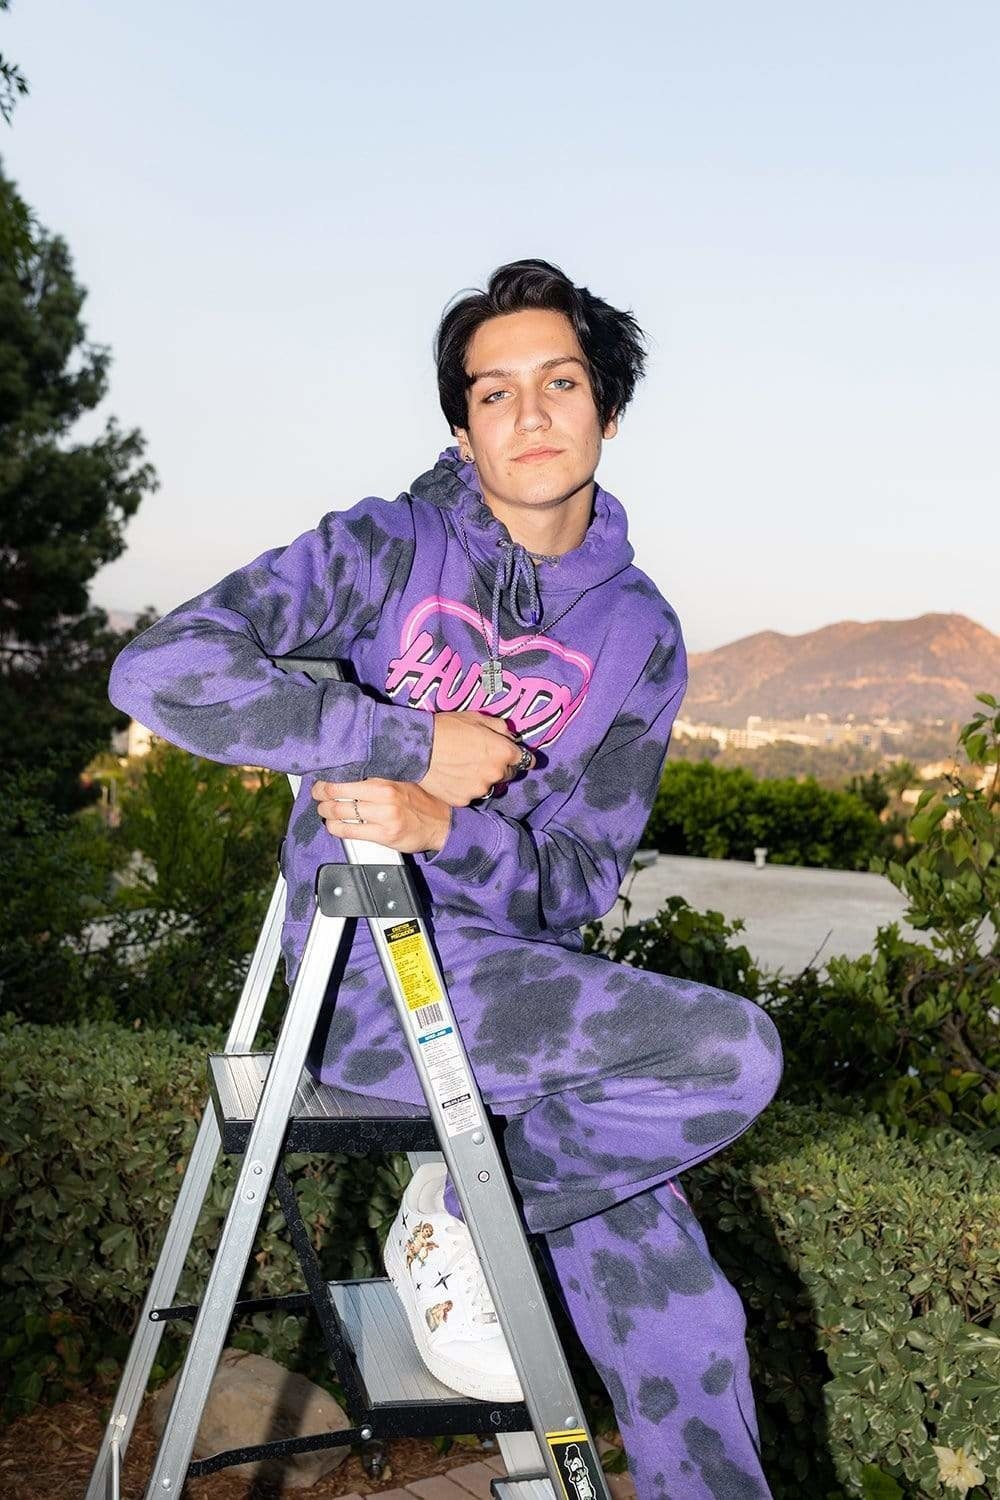 Chase poses in a purple tie dye hoodie